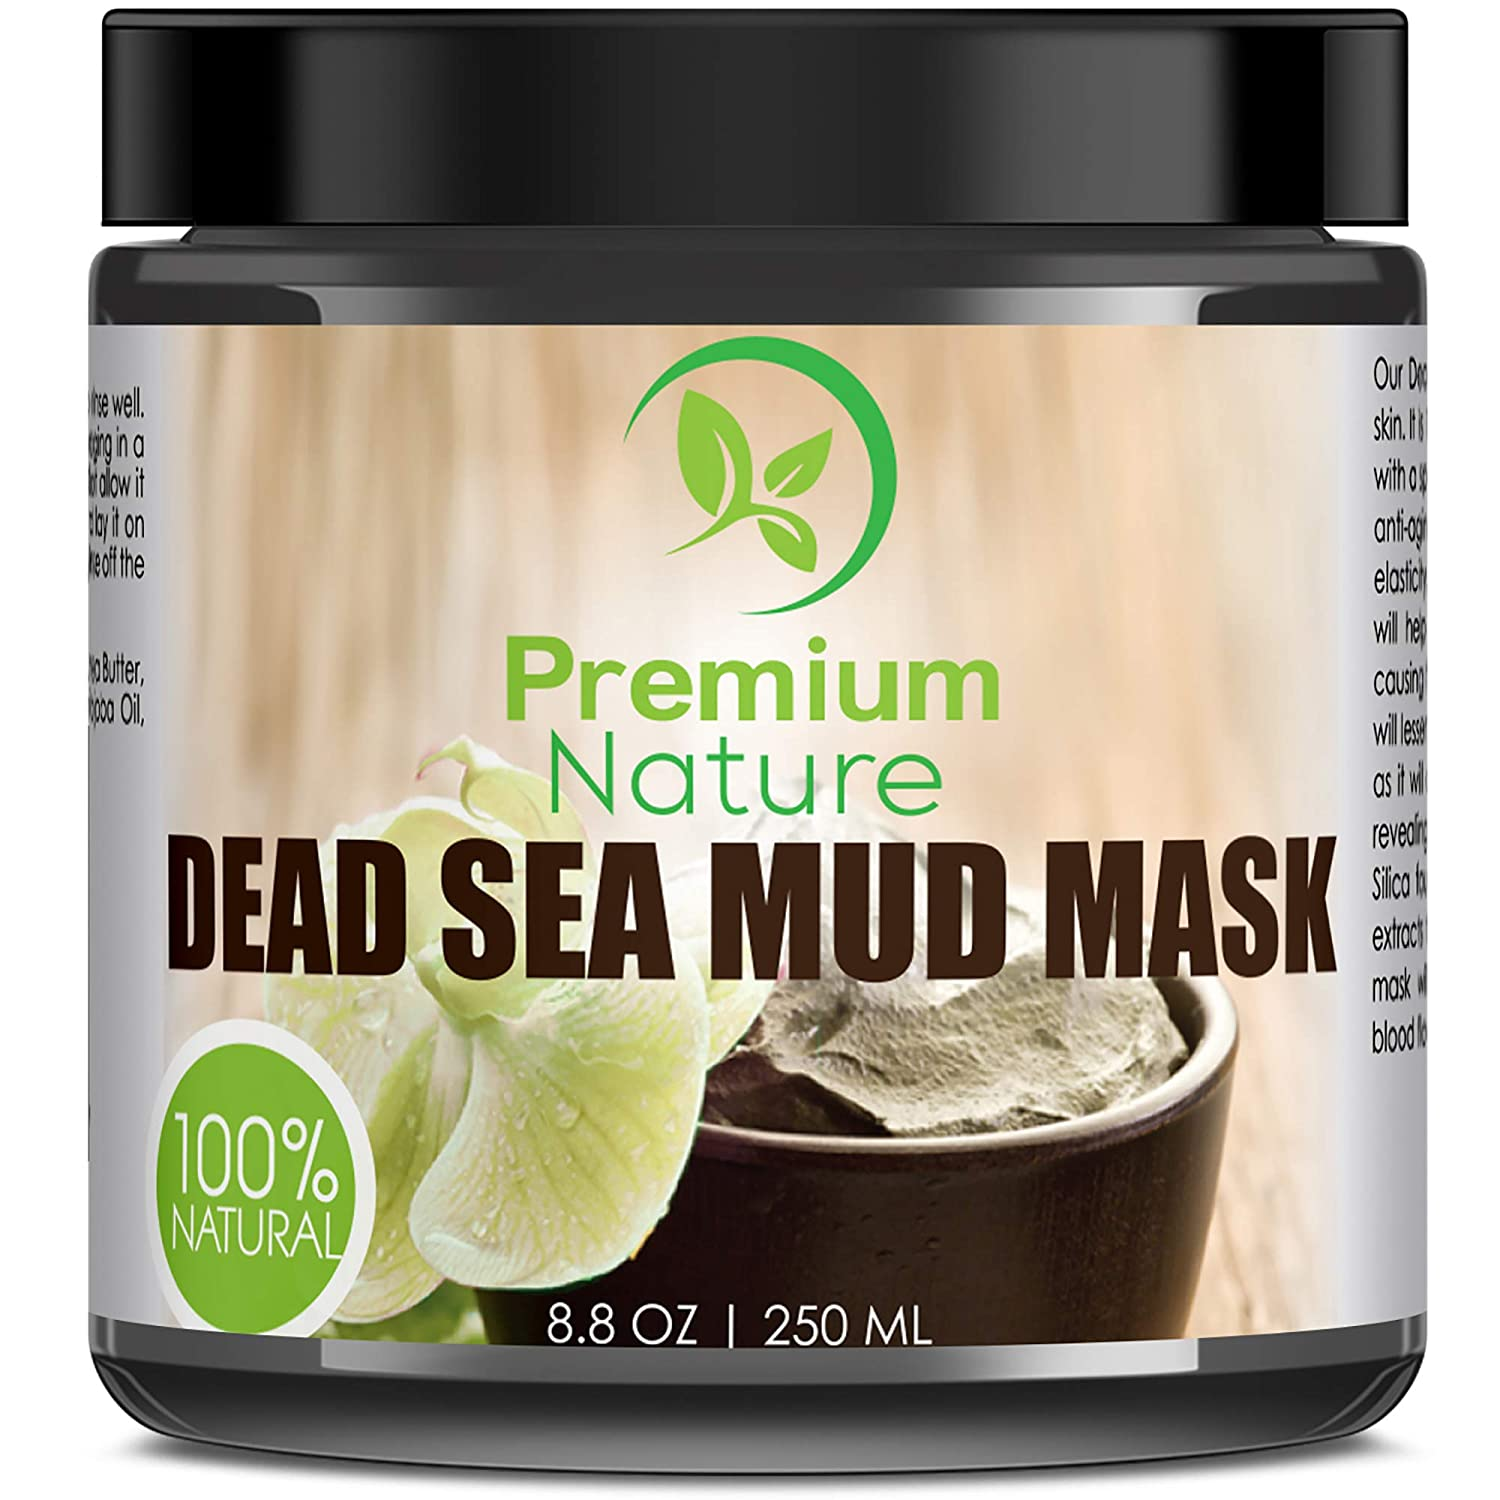 Dead Sea Mud Face Mask - Blackhead Remover Detox Deep cleaning Pores Minimizer facemasks Hydrating Facial Cleanser Wash Oily Dry Skin Care Control Acne Treatment Natural Women Mens Products Limited Edition 8.8 oz Premium Nature Dead Sea Mud Mask